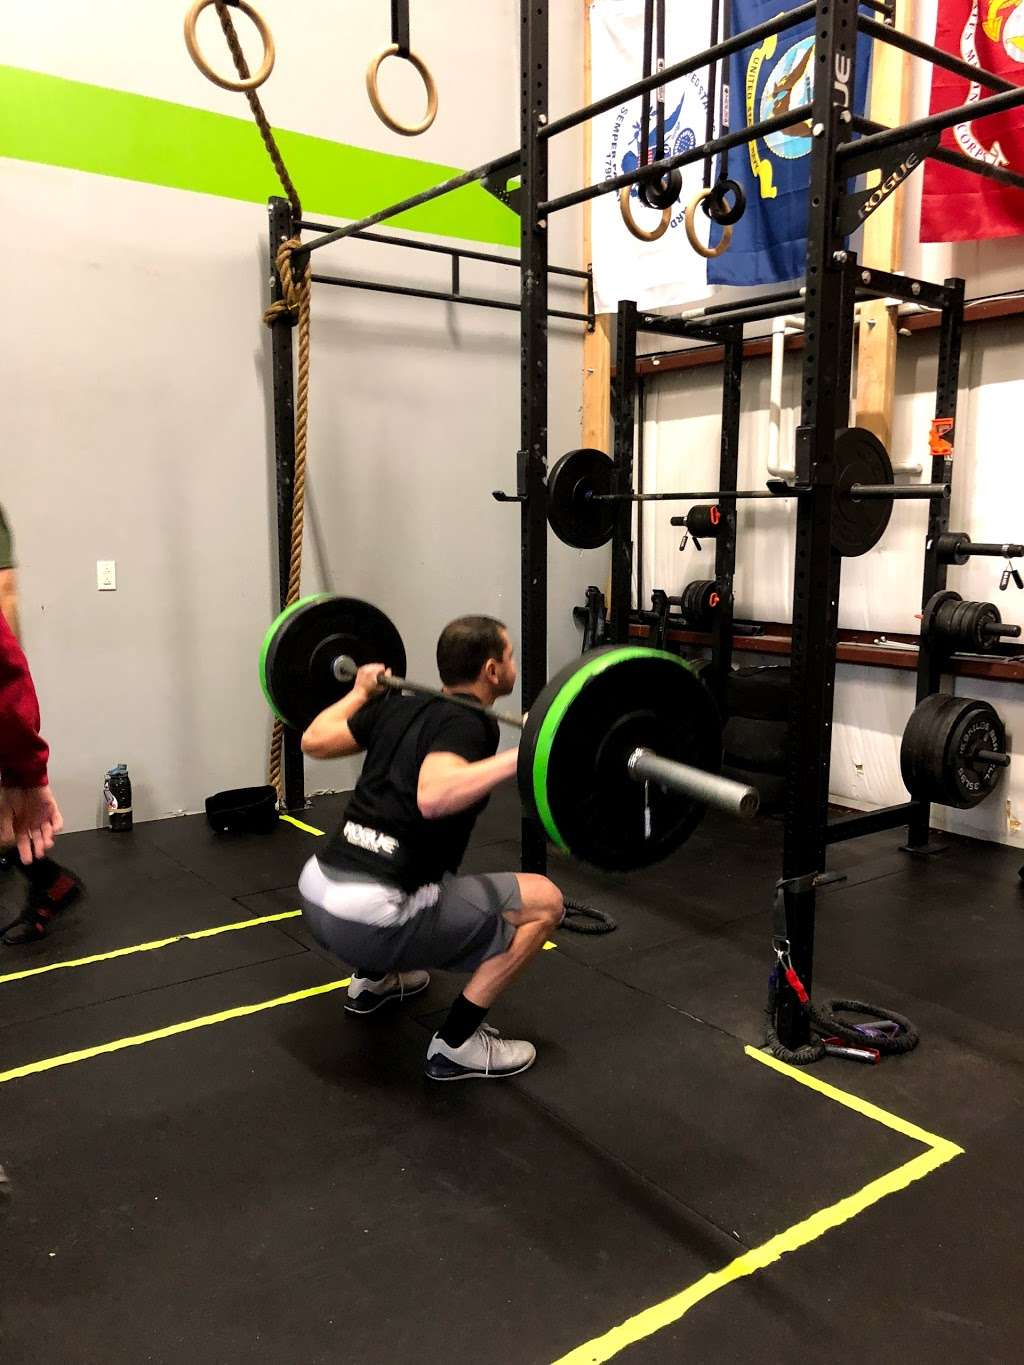 Clamtown CrossFit - gym  | Photo 5 of 10 | Address: 140 7th Ave # 2, Little Egg Harbor Township, NJ 08087, USA | Phone: (609) 812-2145